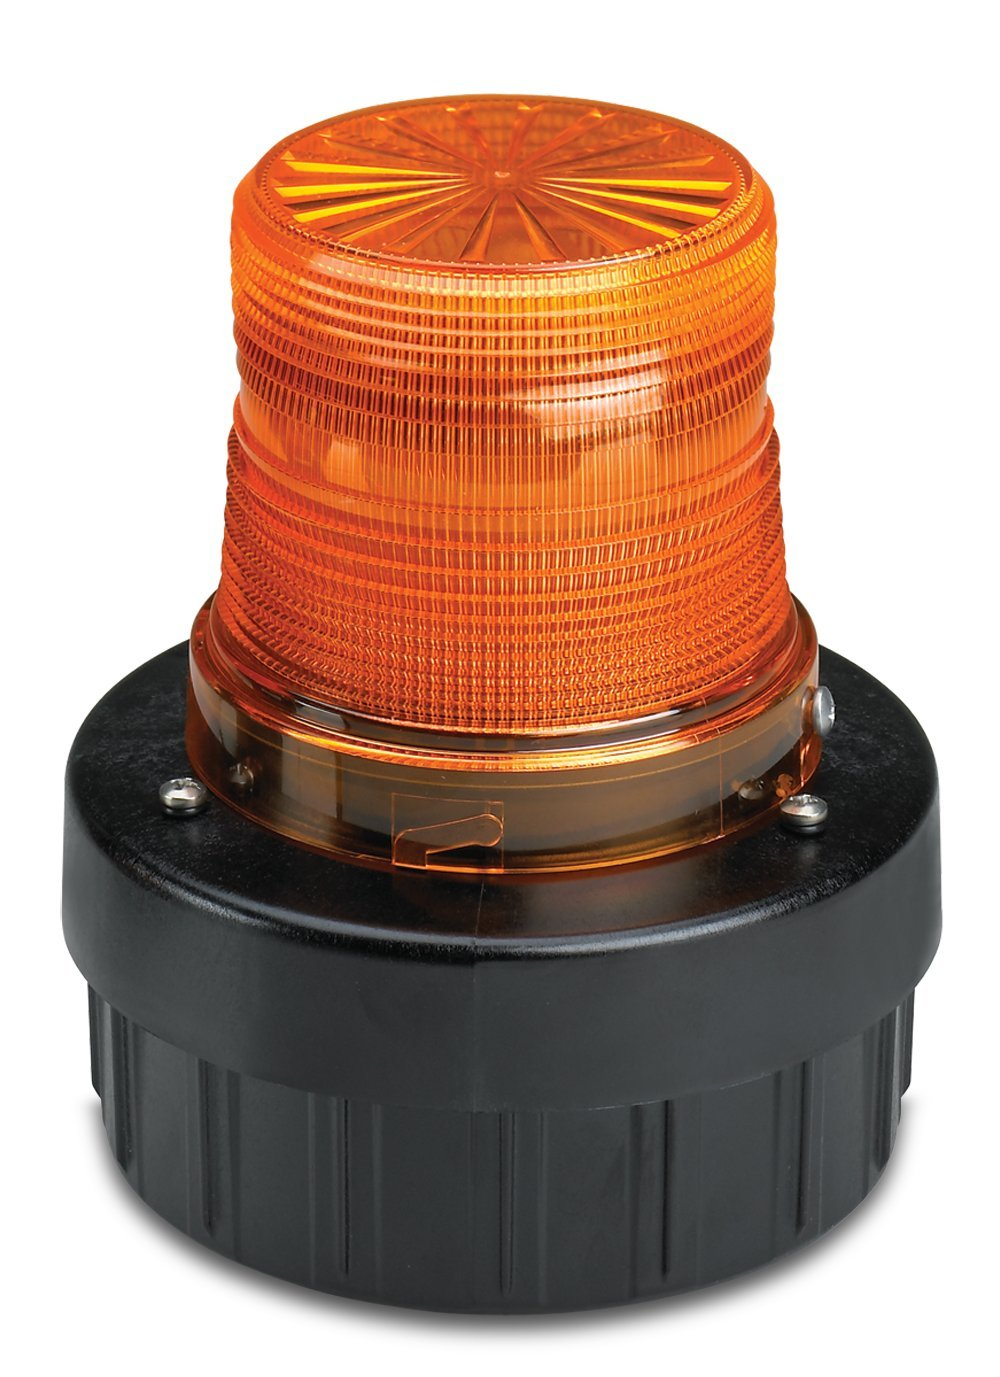 Federal Signal AV1ST-120A Strobe Combination Audible/Visual Signal 120 VAC, Pipe/Surface Mount, 120 VAC, Amber by Federal Signal